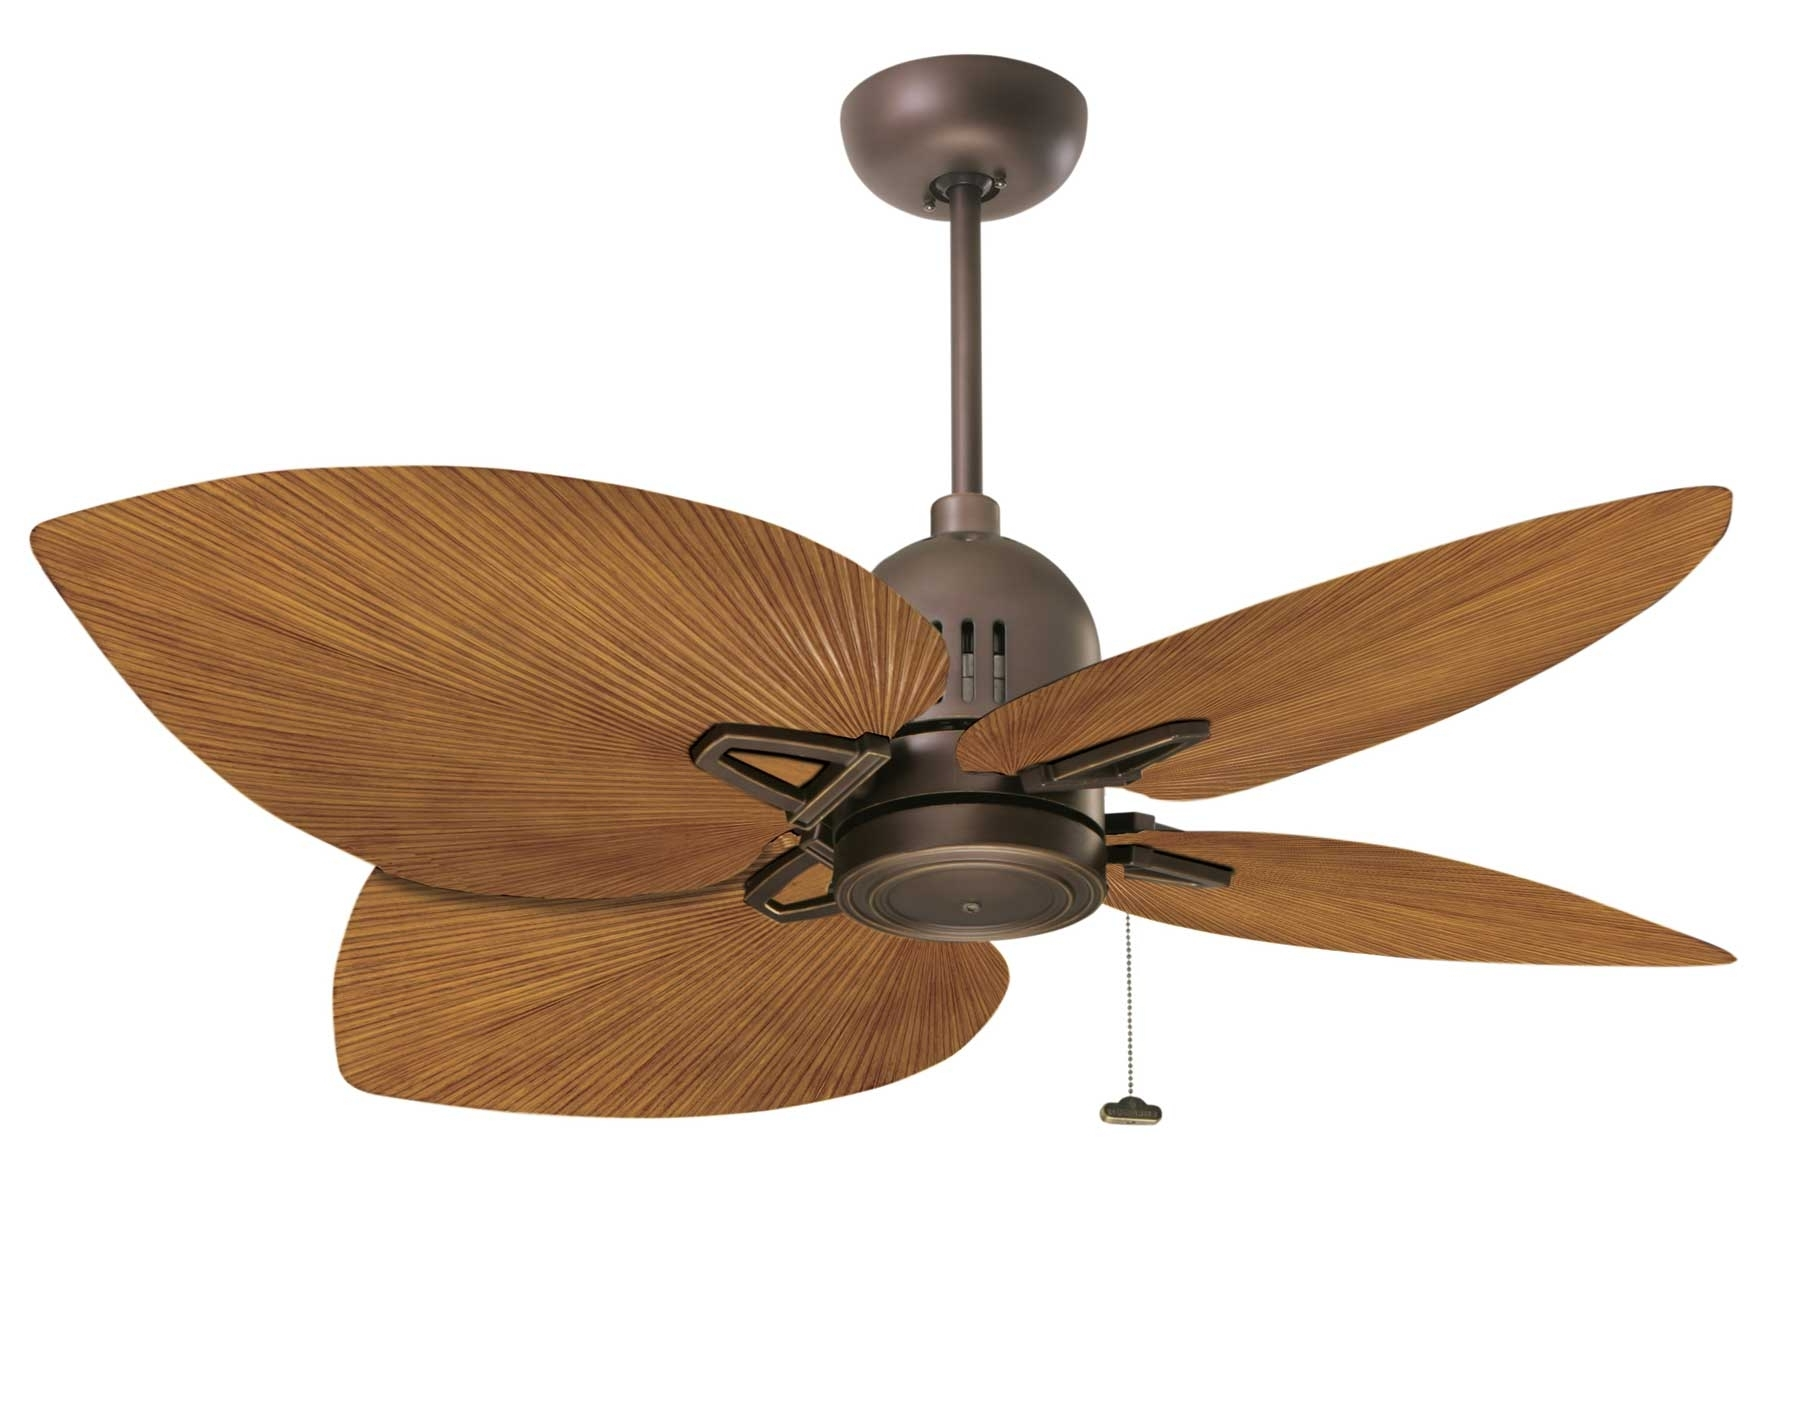 Current Decor: Bring An Island Look Into Your Home With Cool Ceiling Fan Throughout Outdoor Ceiling Fans With Covers (View 12 of 20)